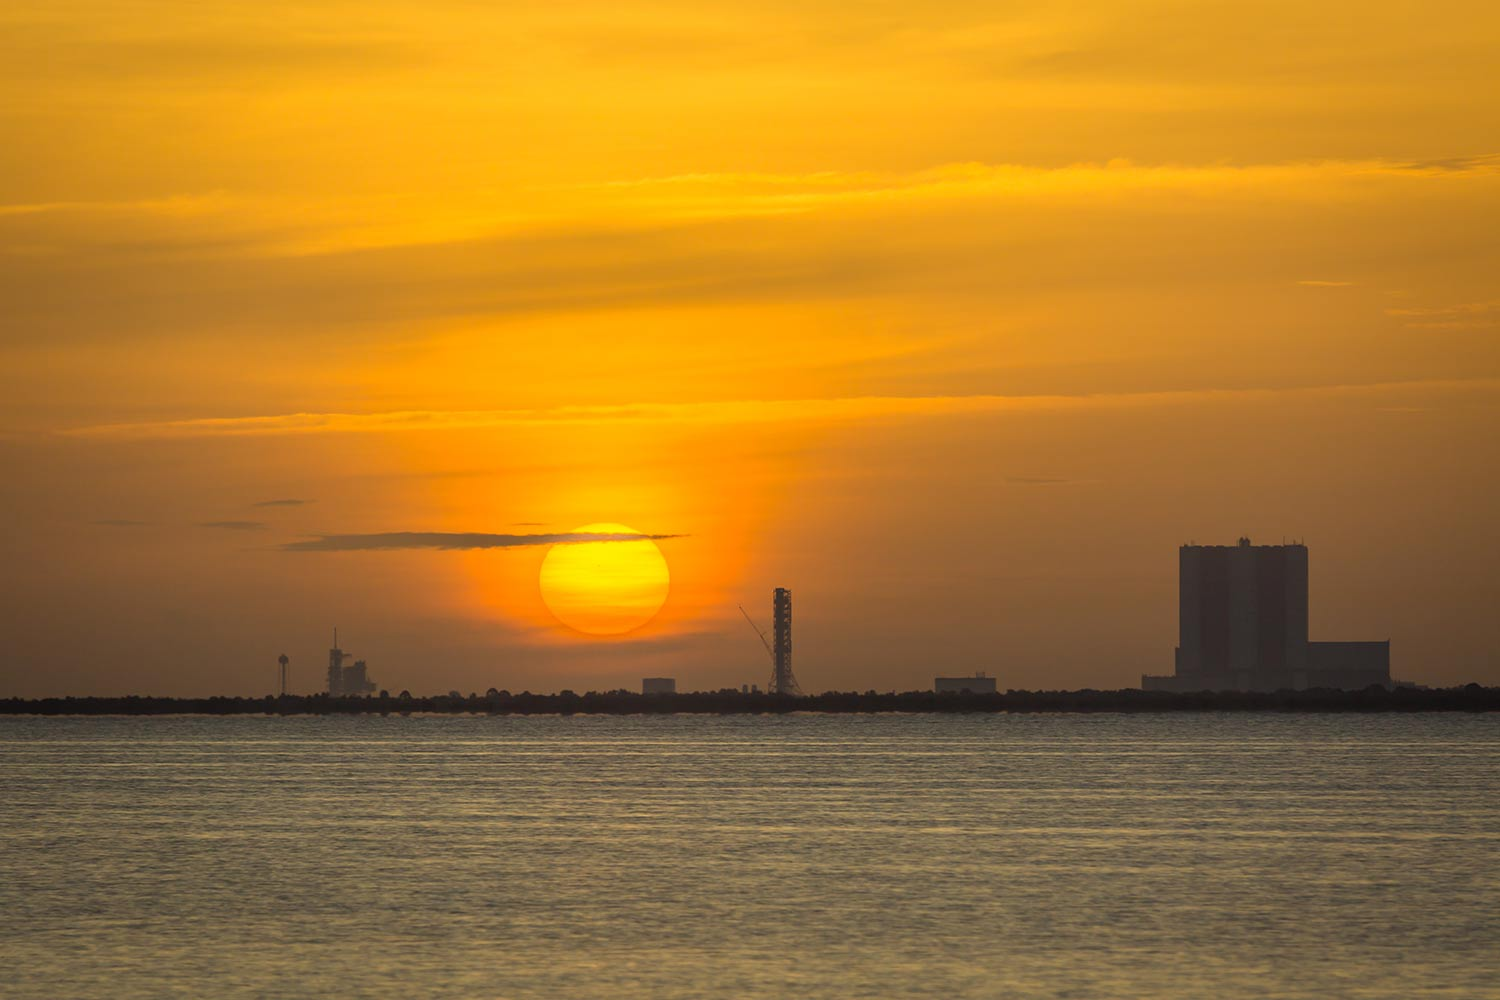 Sunrise over the Kennedy Space Center.